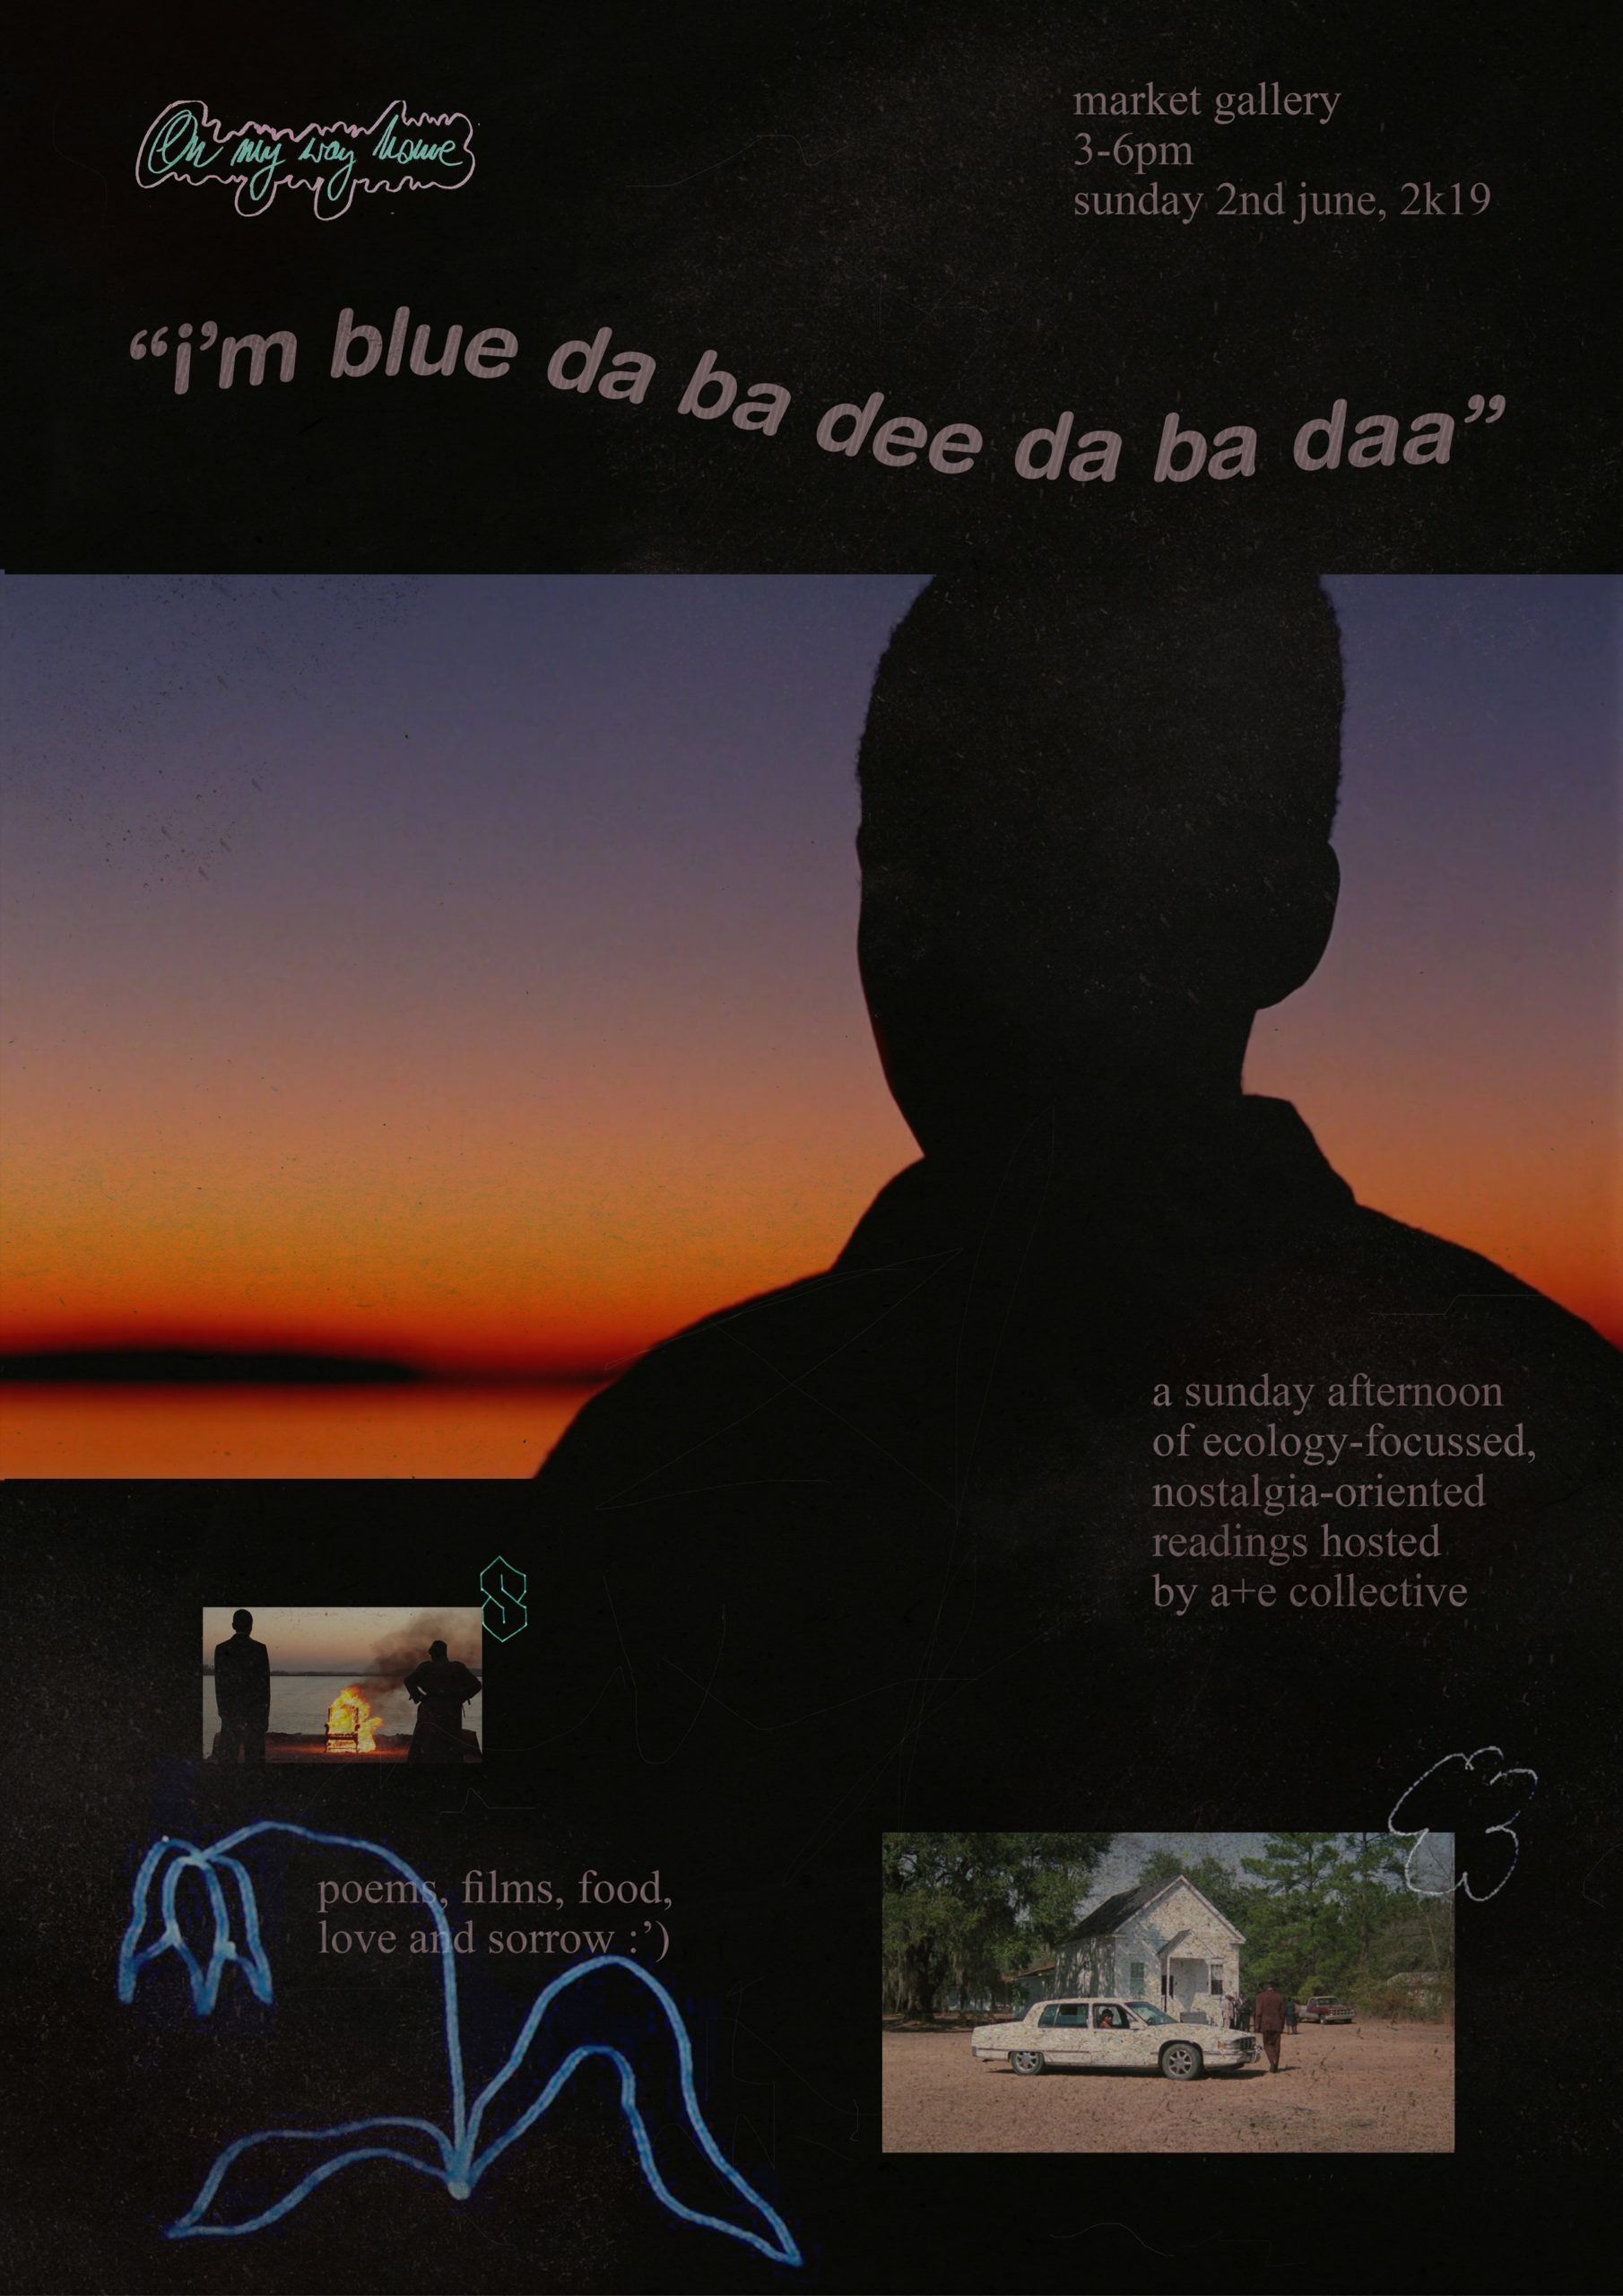 """Event poster with the title reading """"i'm blue da ba dee da ba daa"""" and main image of a still from David Grainger's film 'The Chair'. A boy is looking at an orange and purple sunset, seen from behind. Additional text reads: a sunday afternoon of eccology-focussed, nostalgia-oriented readings hosted by a + e collective."""